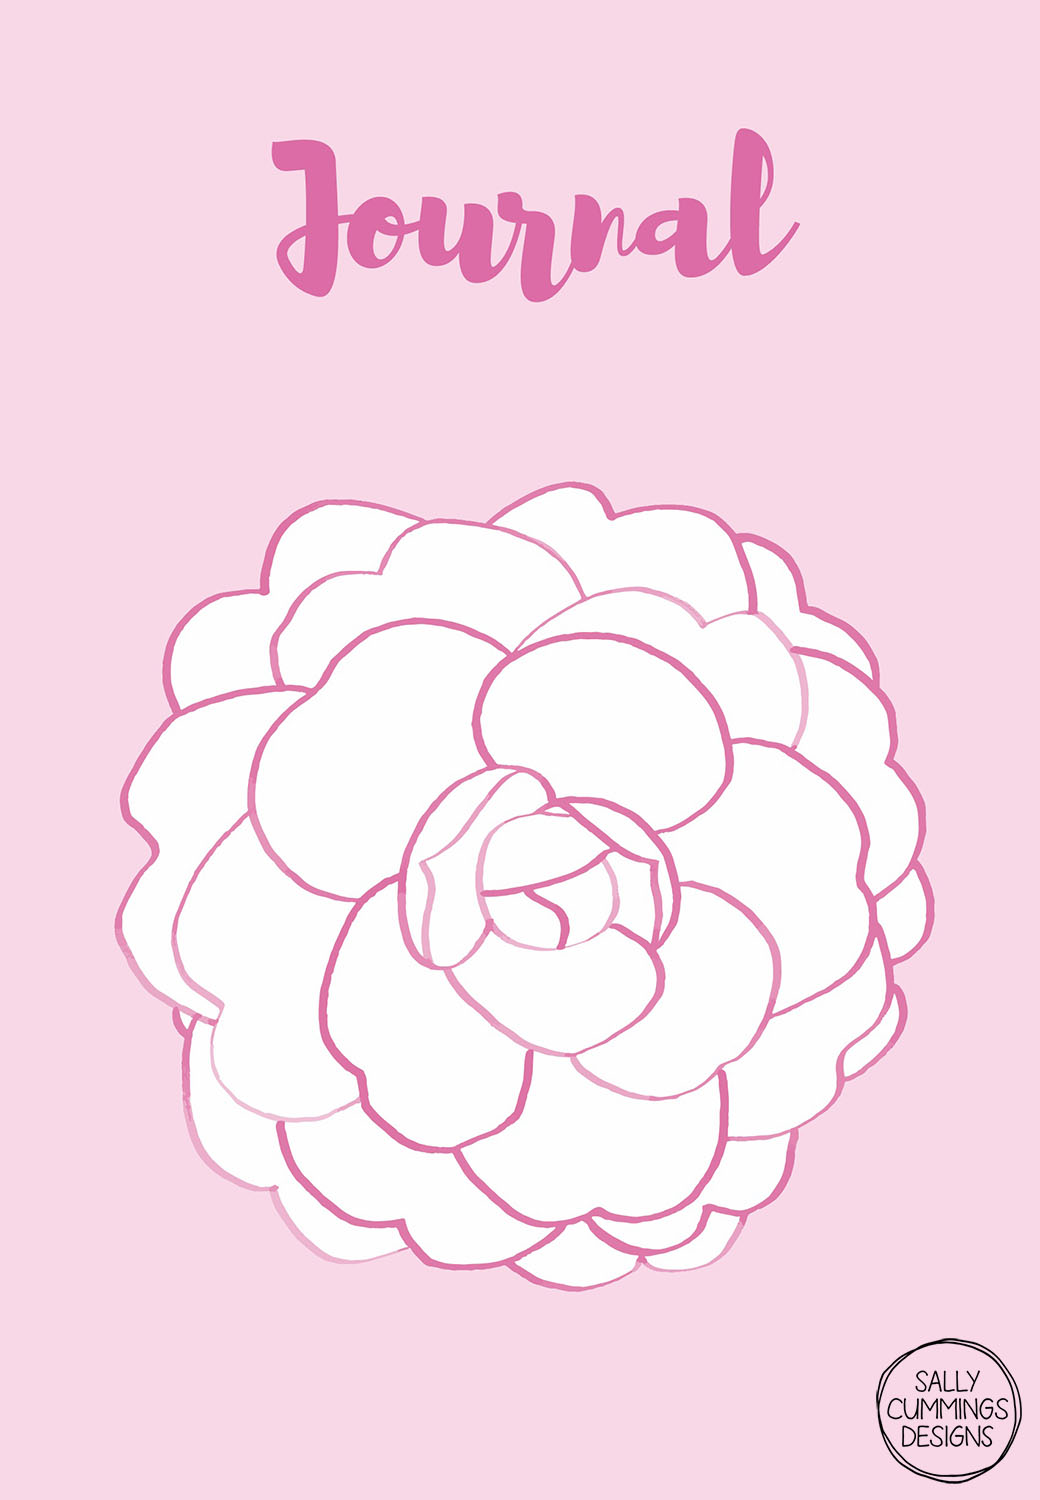 Sally Cummings Designs - Pink Camellia Journal Cover